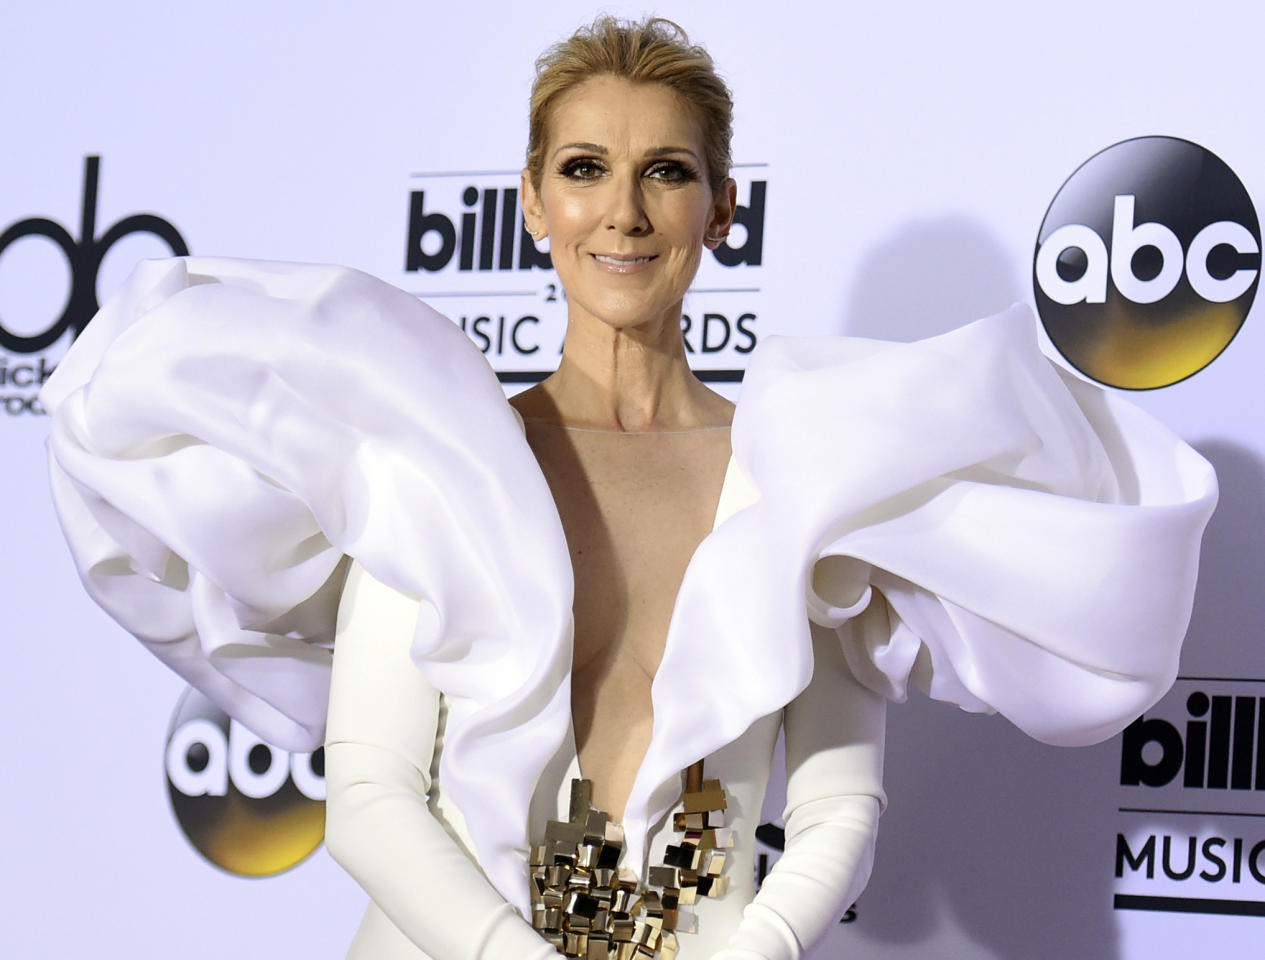 FILE - In this May 21, 2017 file photo, Celine Dion poses in the press room at the Billboard Music Awards in Las Vegas. Dion has announced she will end her Las Vegas residency next year. The singer announced on social media Monday, Sept. 24, 2018, that she will leave Caesars Palace in June 2019. (Photo by Richard Shotwell/Invision/AP, File)